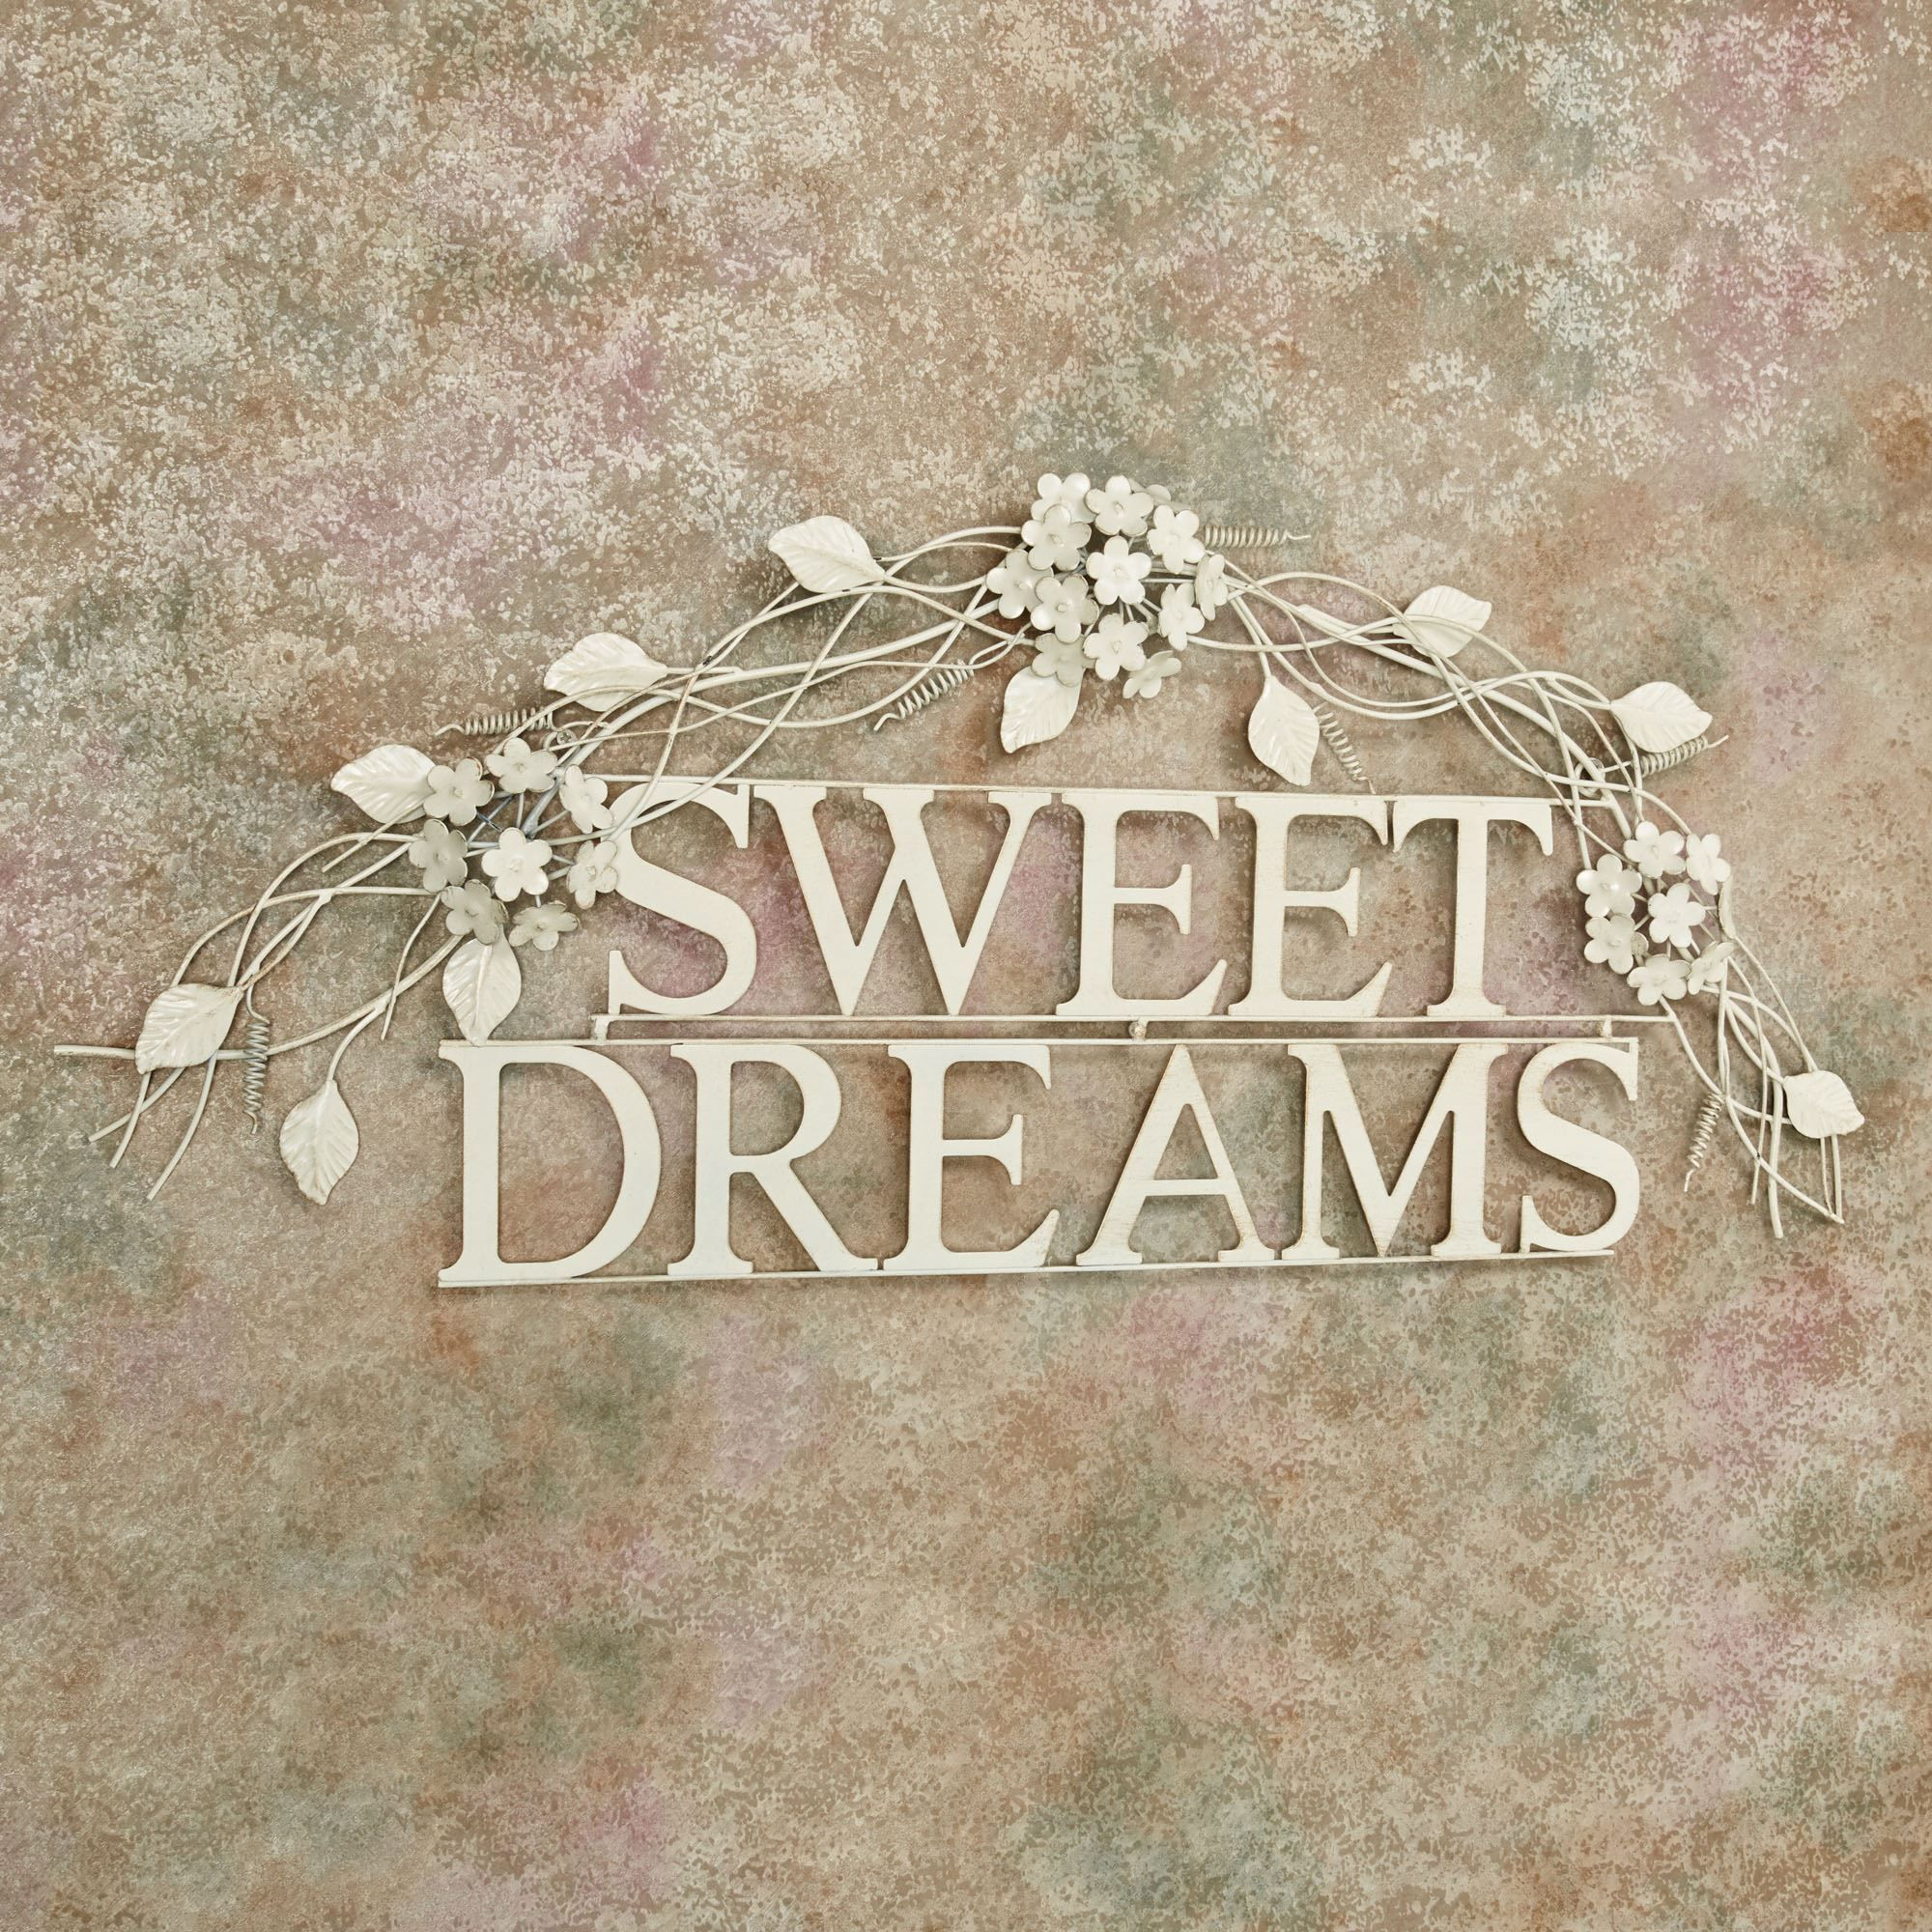 sweet dreams creamy gold metal word wall art in 2020 on sweet dreams for your home plants decoration precautions and options id=32778